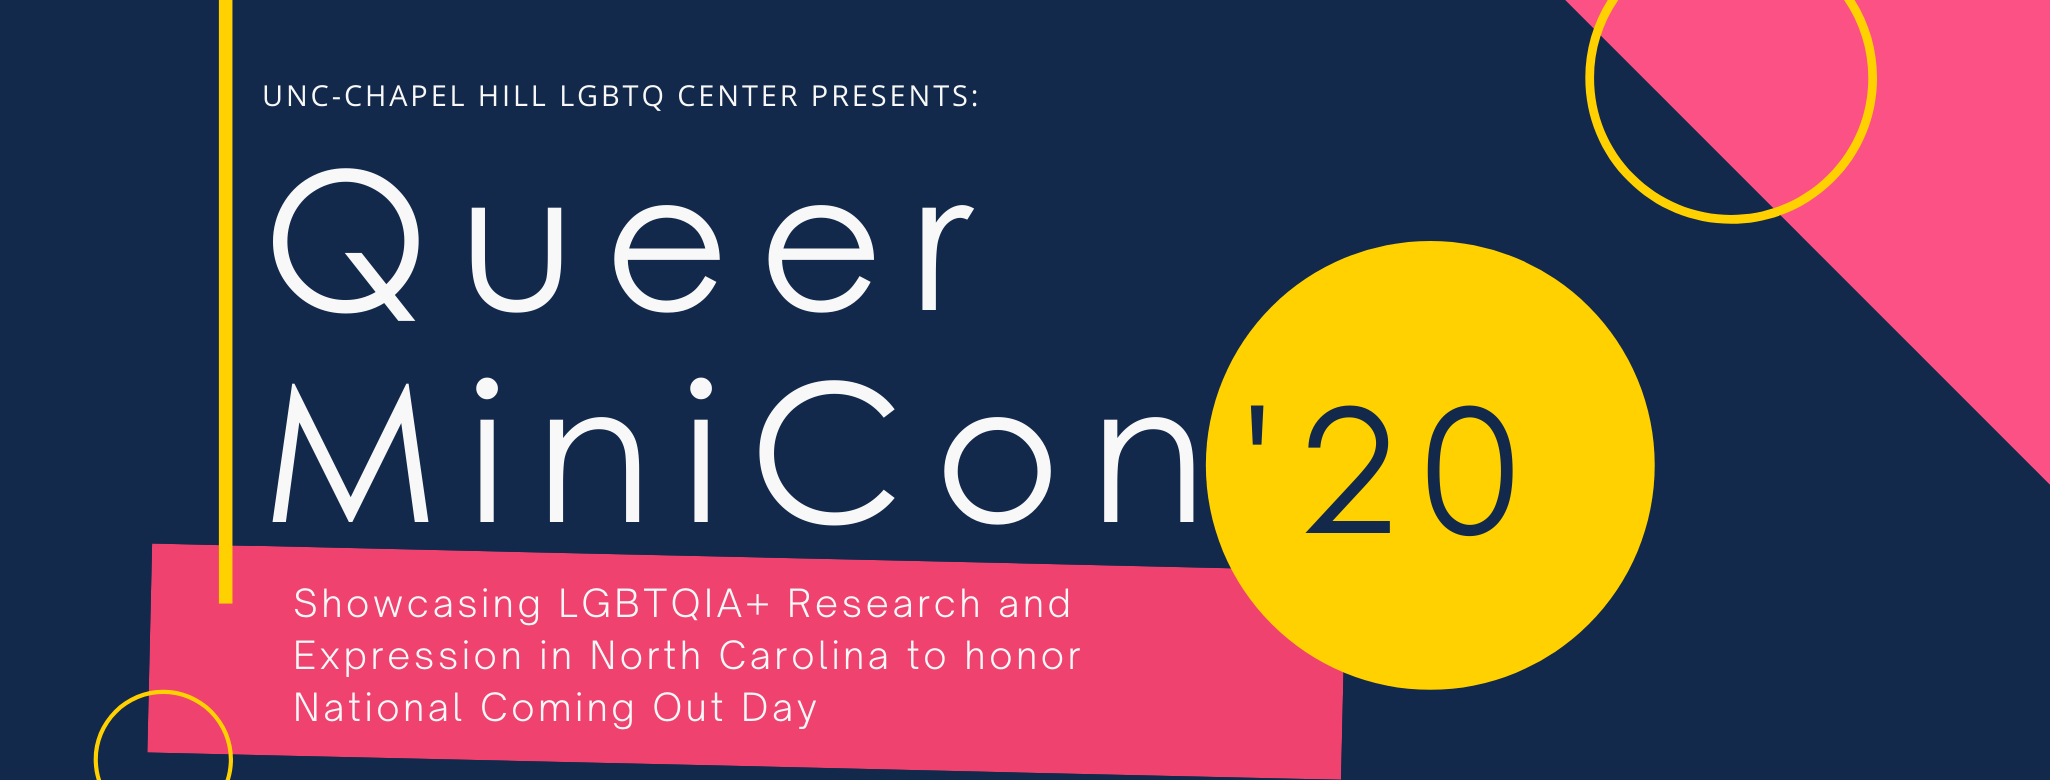 Queer MiniCon 2020: Showcasing LGBTQIA+ research and expression in North Carolina to honor National Coming Out Day